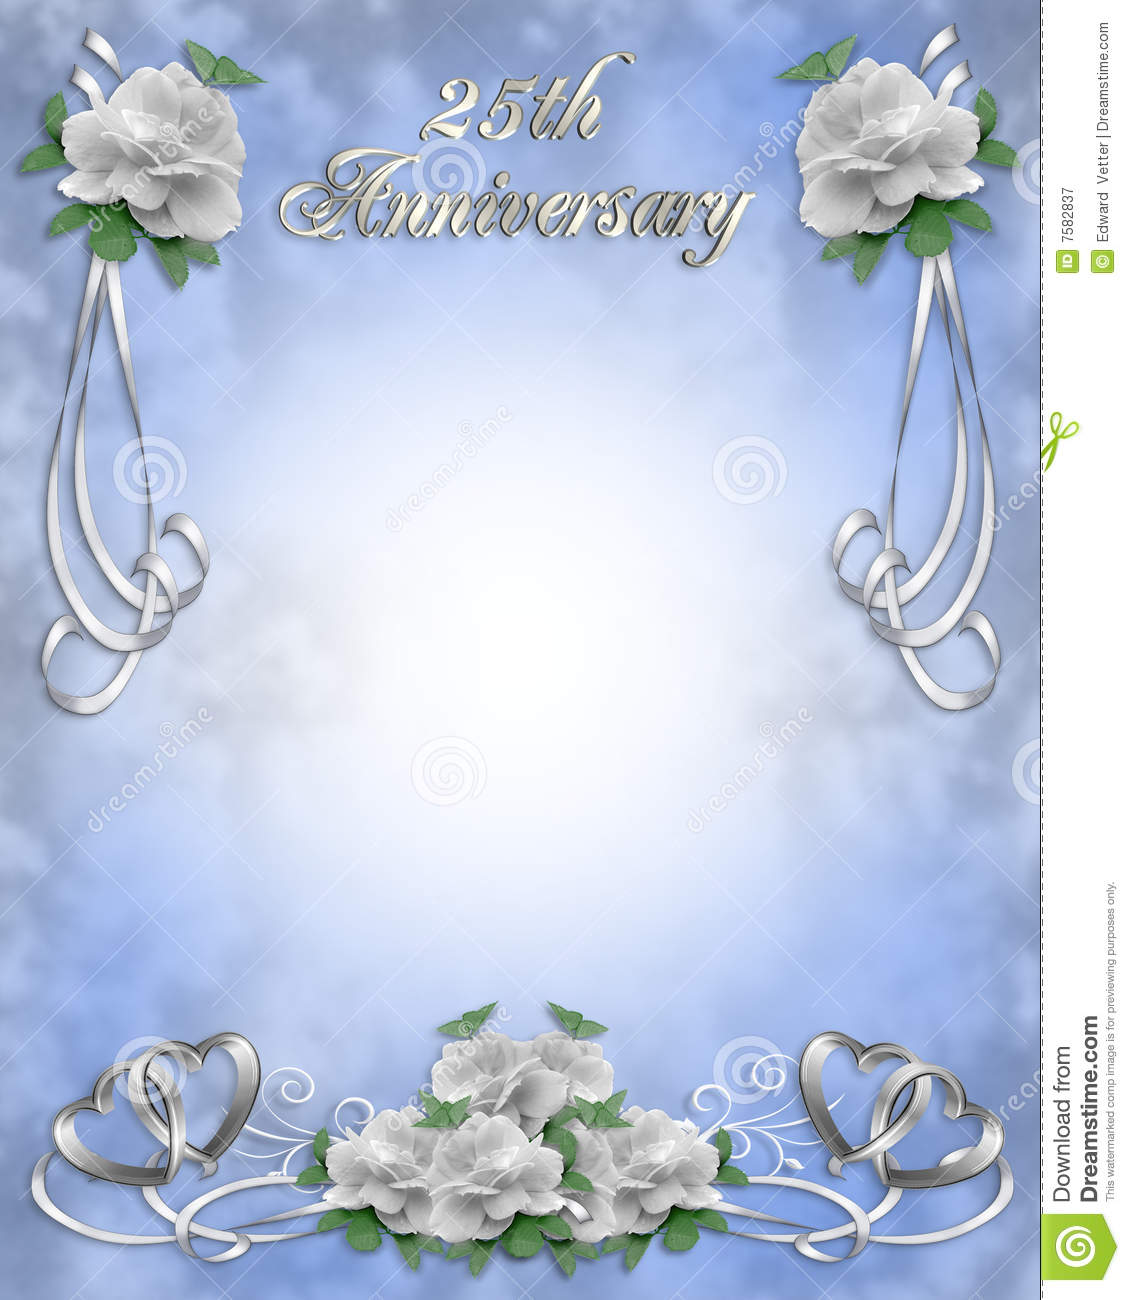 ... wedding anniversary invitation blue background, border or frame with